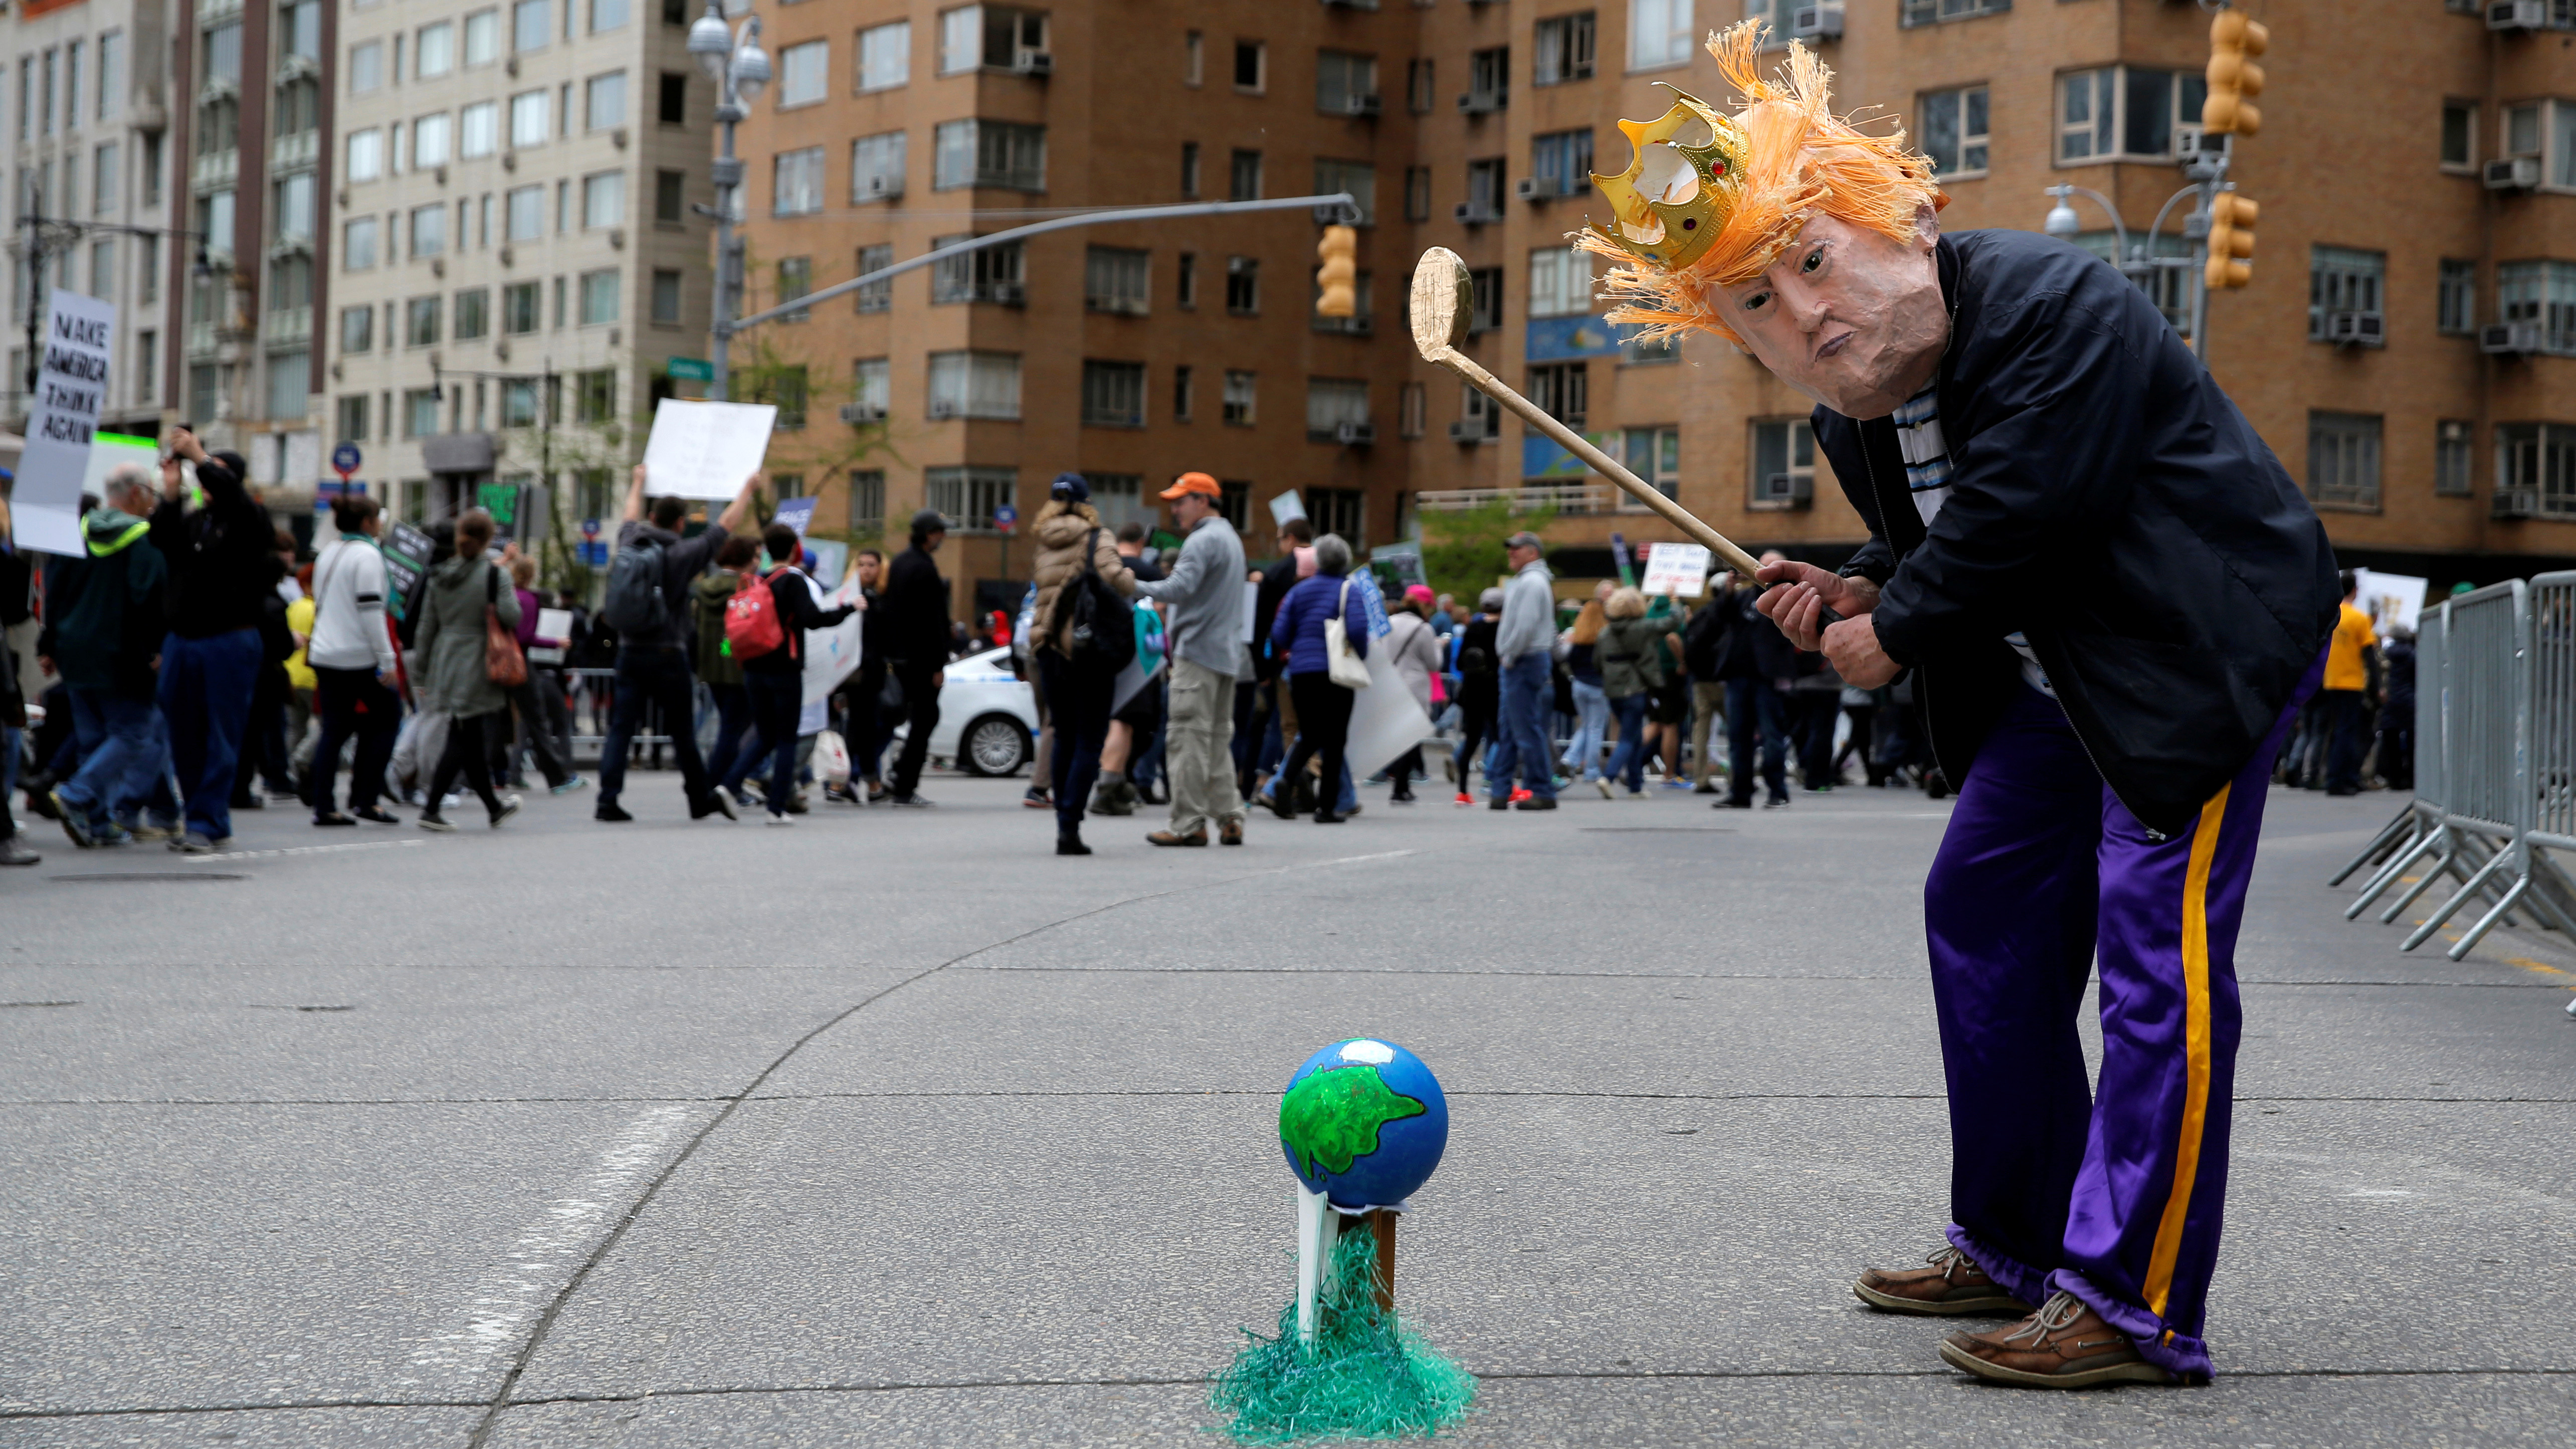 A protester dressed as U.S. president Donald Trump pretends to play golf with the Earth during the Earth Day 'March For Science NYC' demonstration to coincide with similar marches globally in Manhattan, New York, U.S., April 22, 2017.  REUTERS/Andrew Kelly - RTS13G00